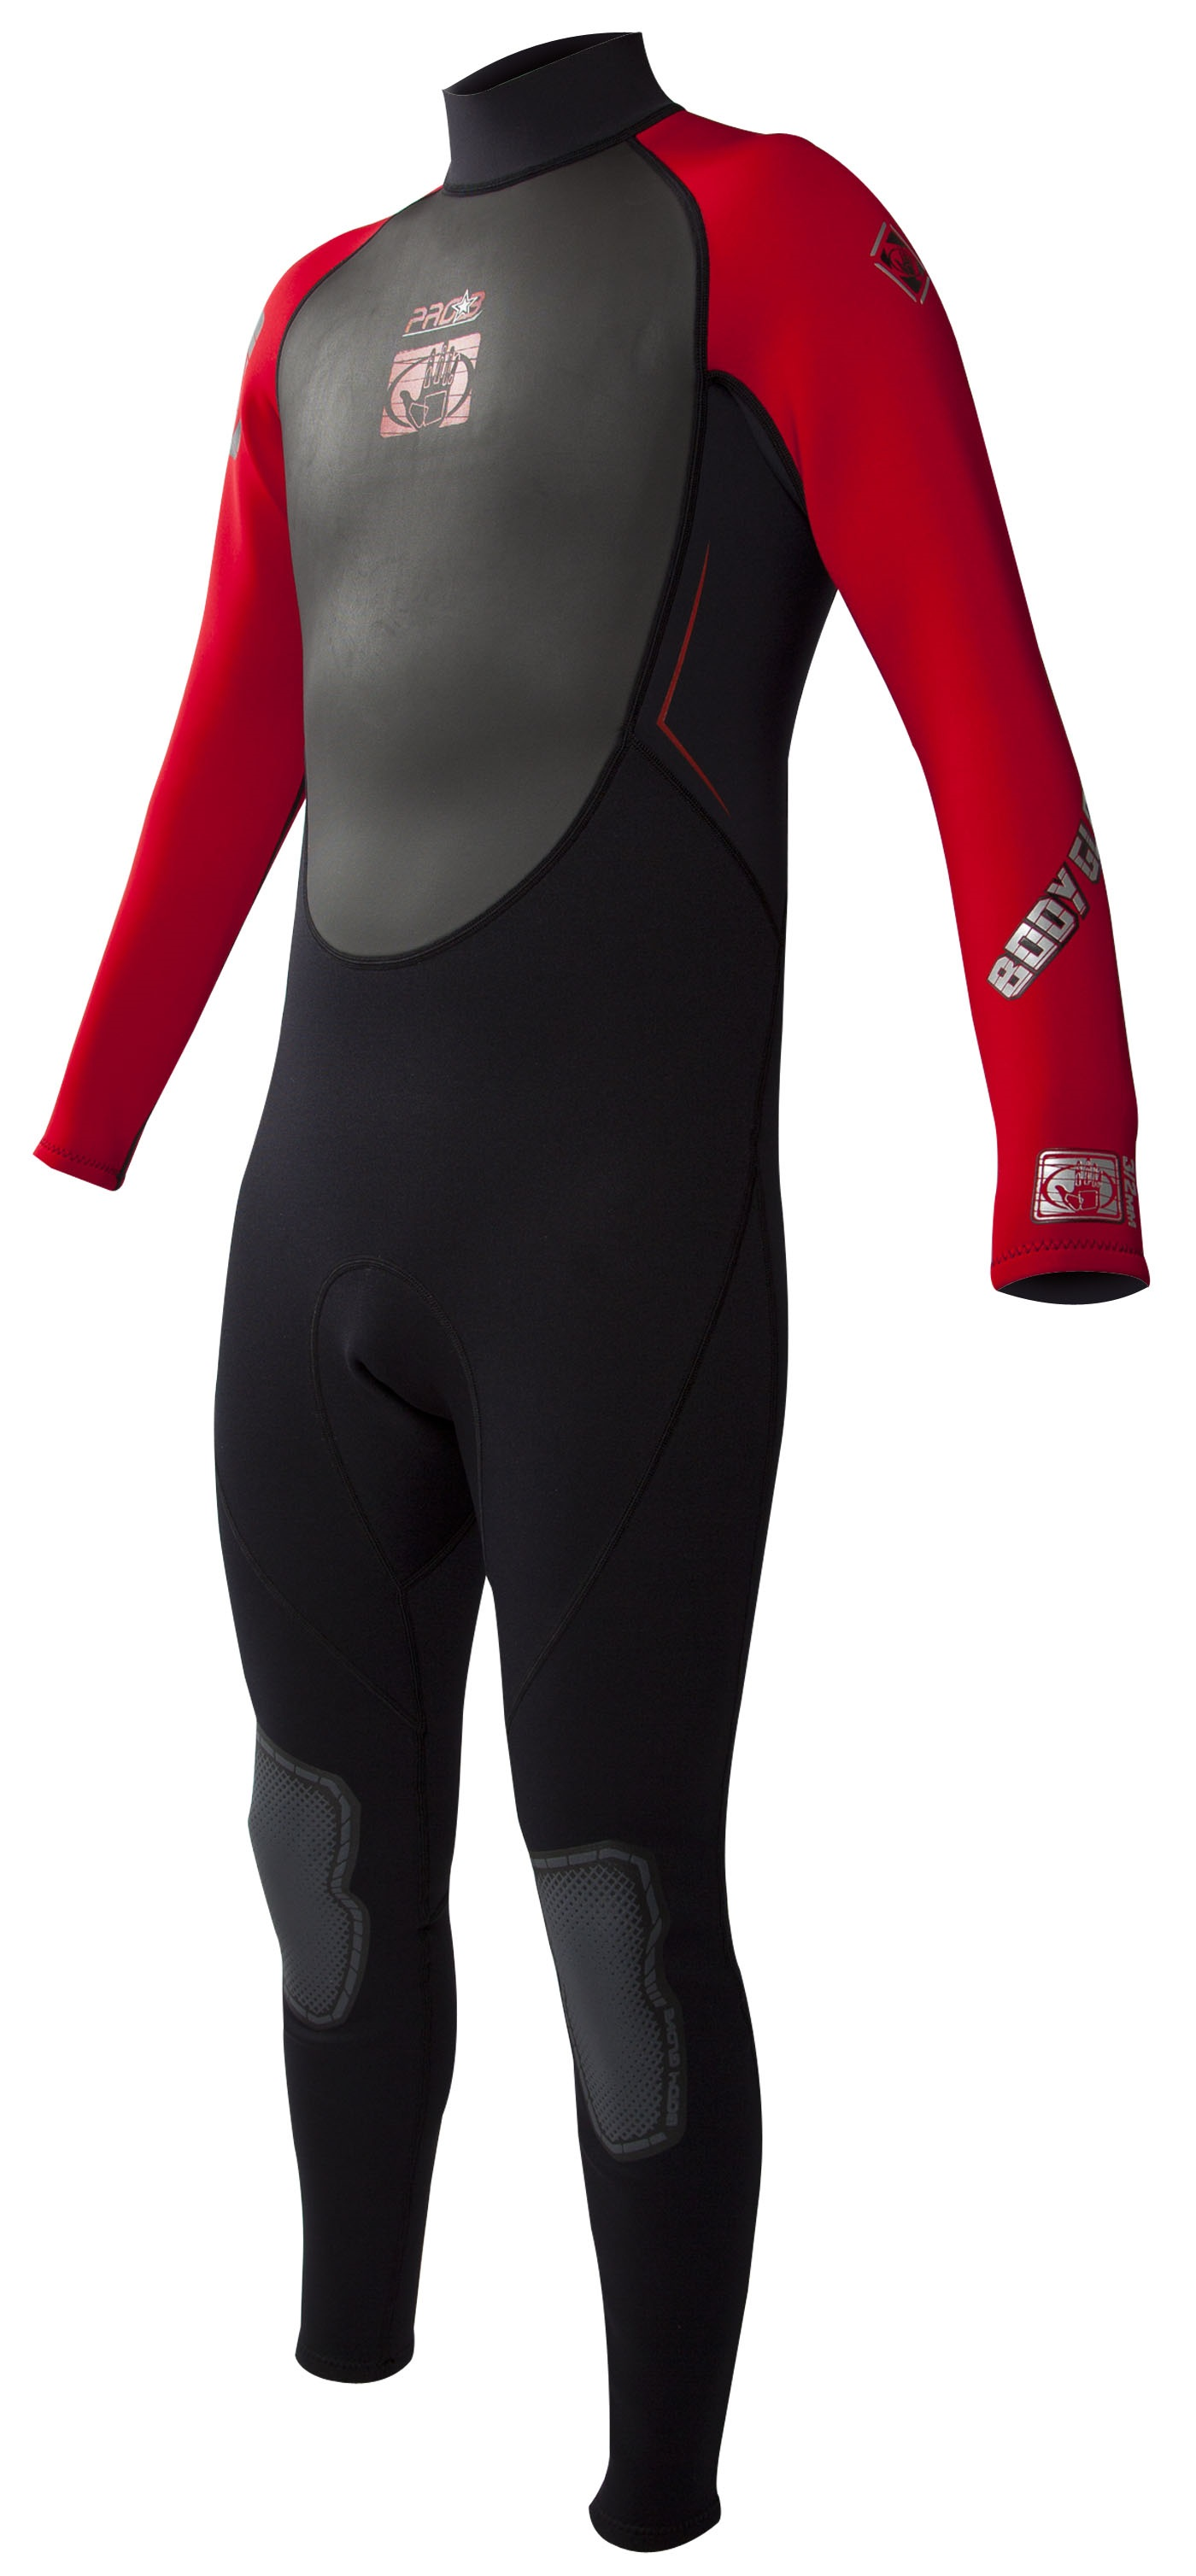 Body Glove Men's Pro 3 3/2mm Full Wetsuit - Black/Red